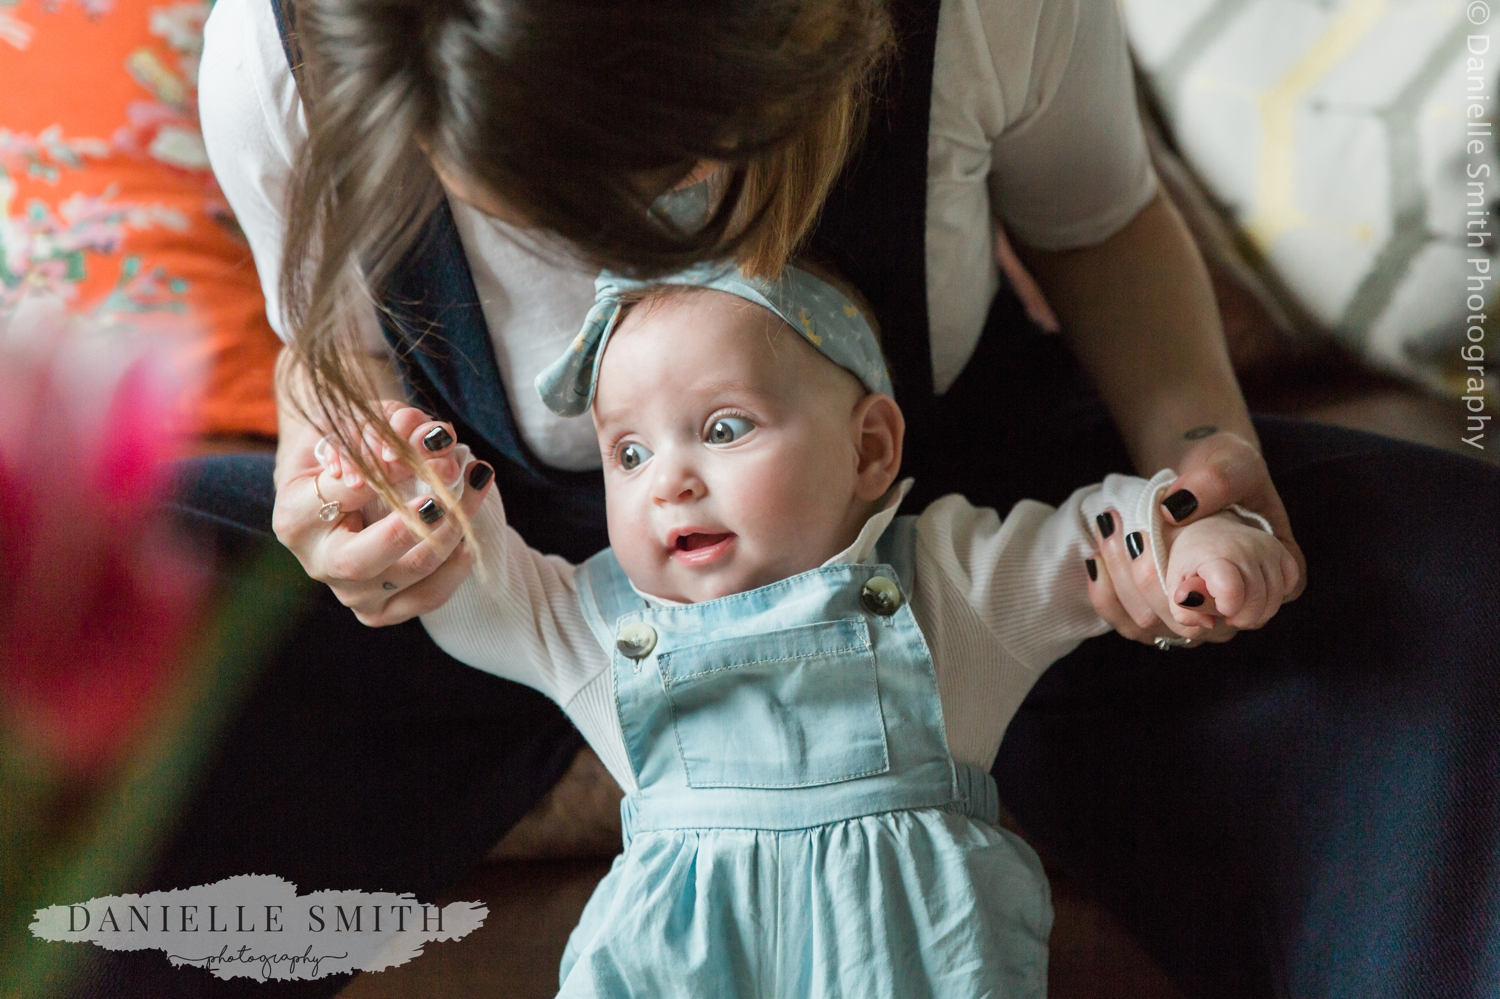 mum holding baby girl up - natural family photos